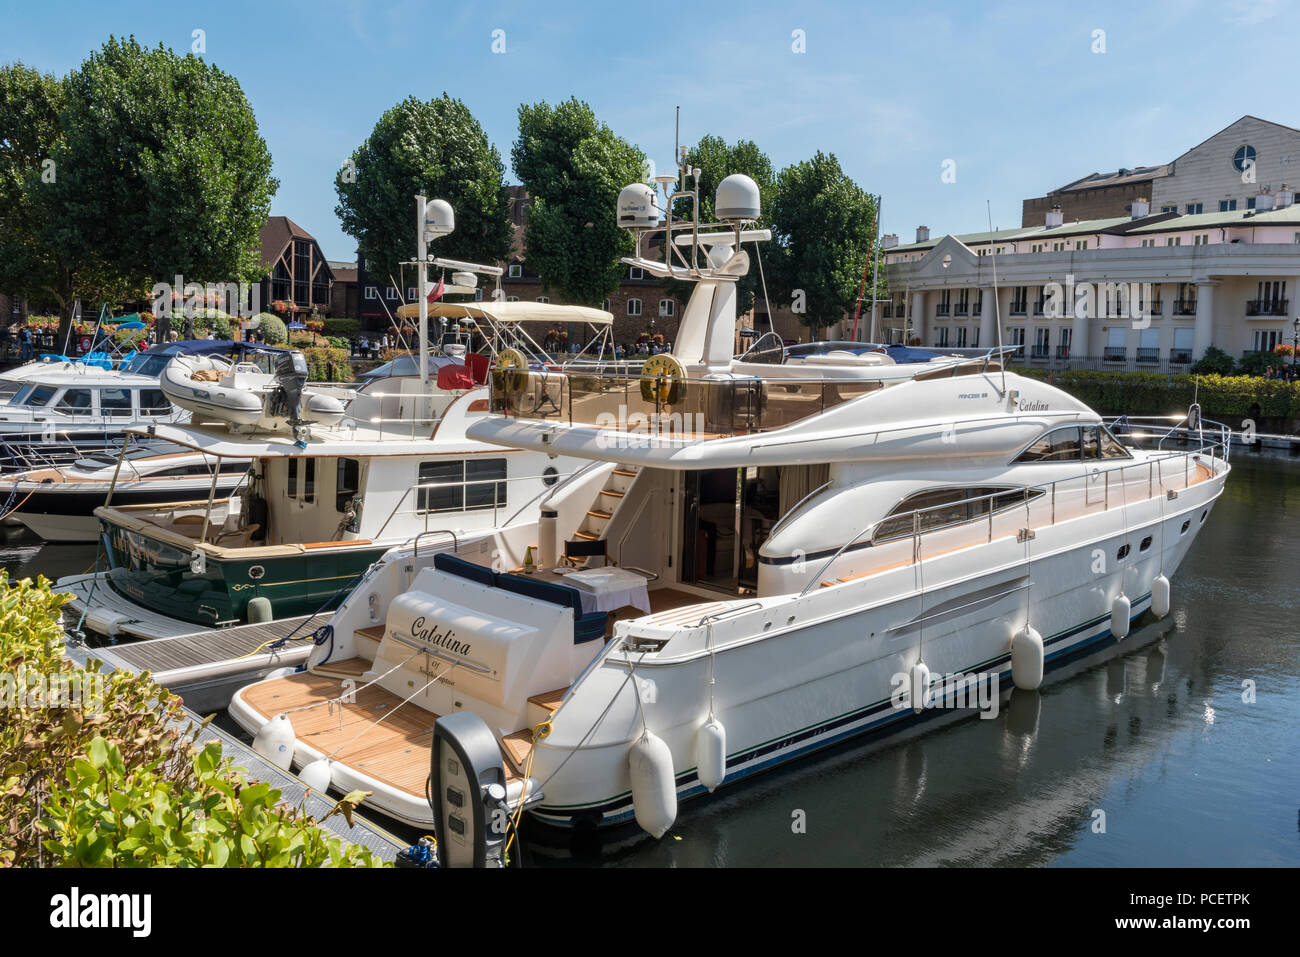 luxury motorboats and cruisers in st katherine docks in central london. - Stock Image